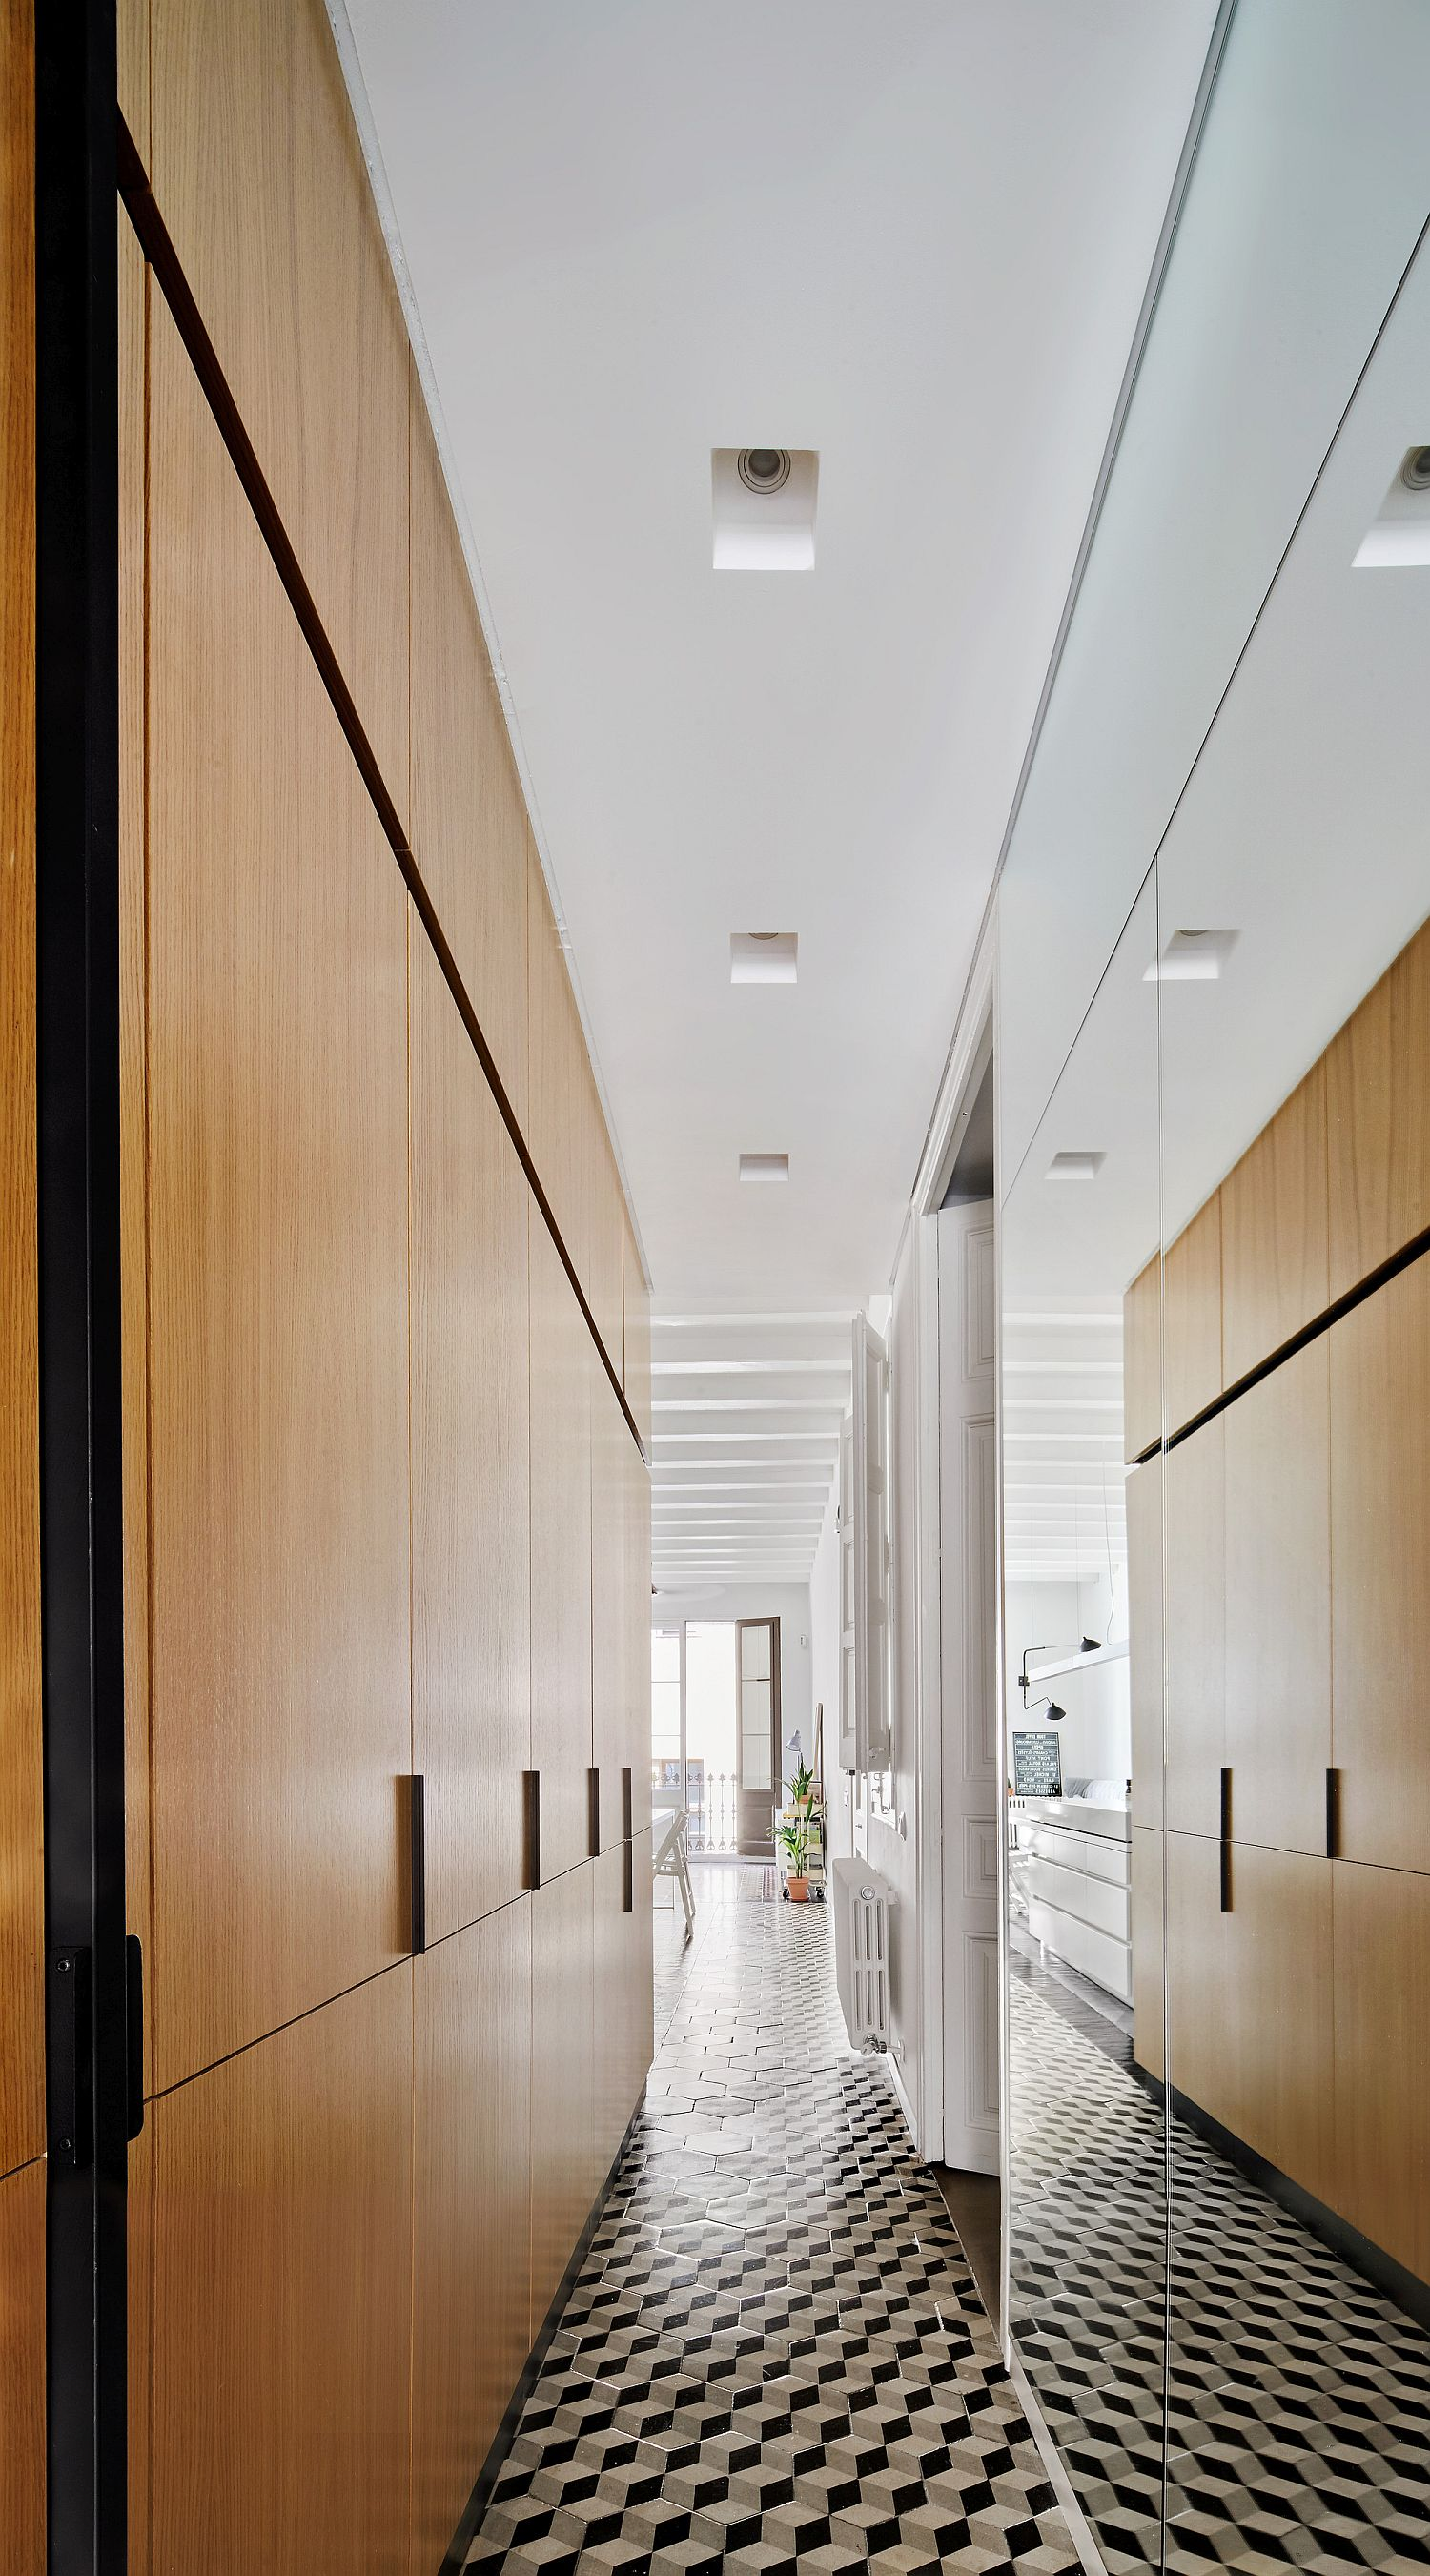 Corridors-with-tiles-and-storage-options-inside-the-apartment